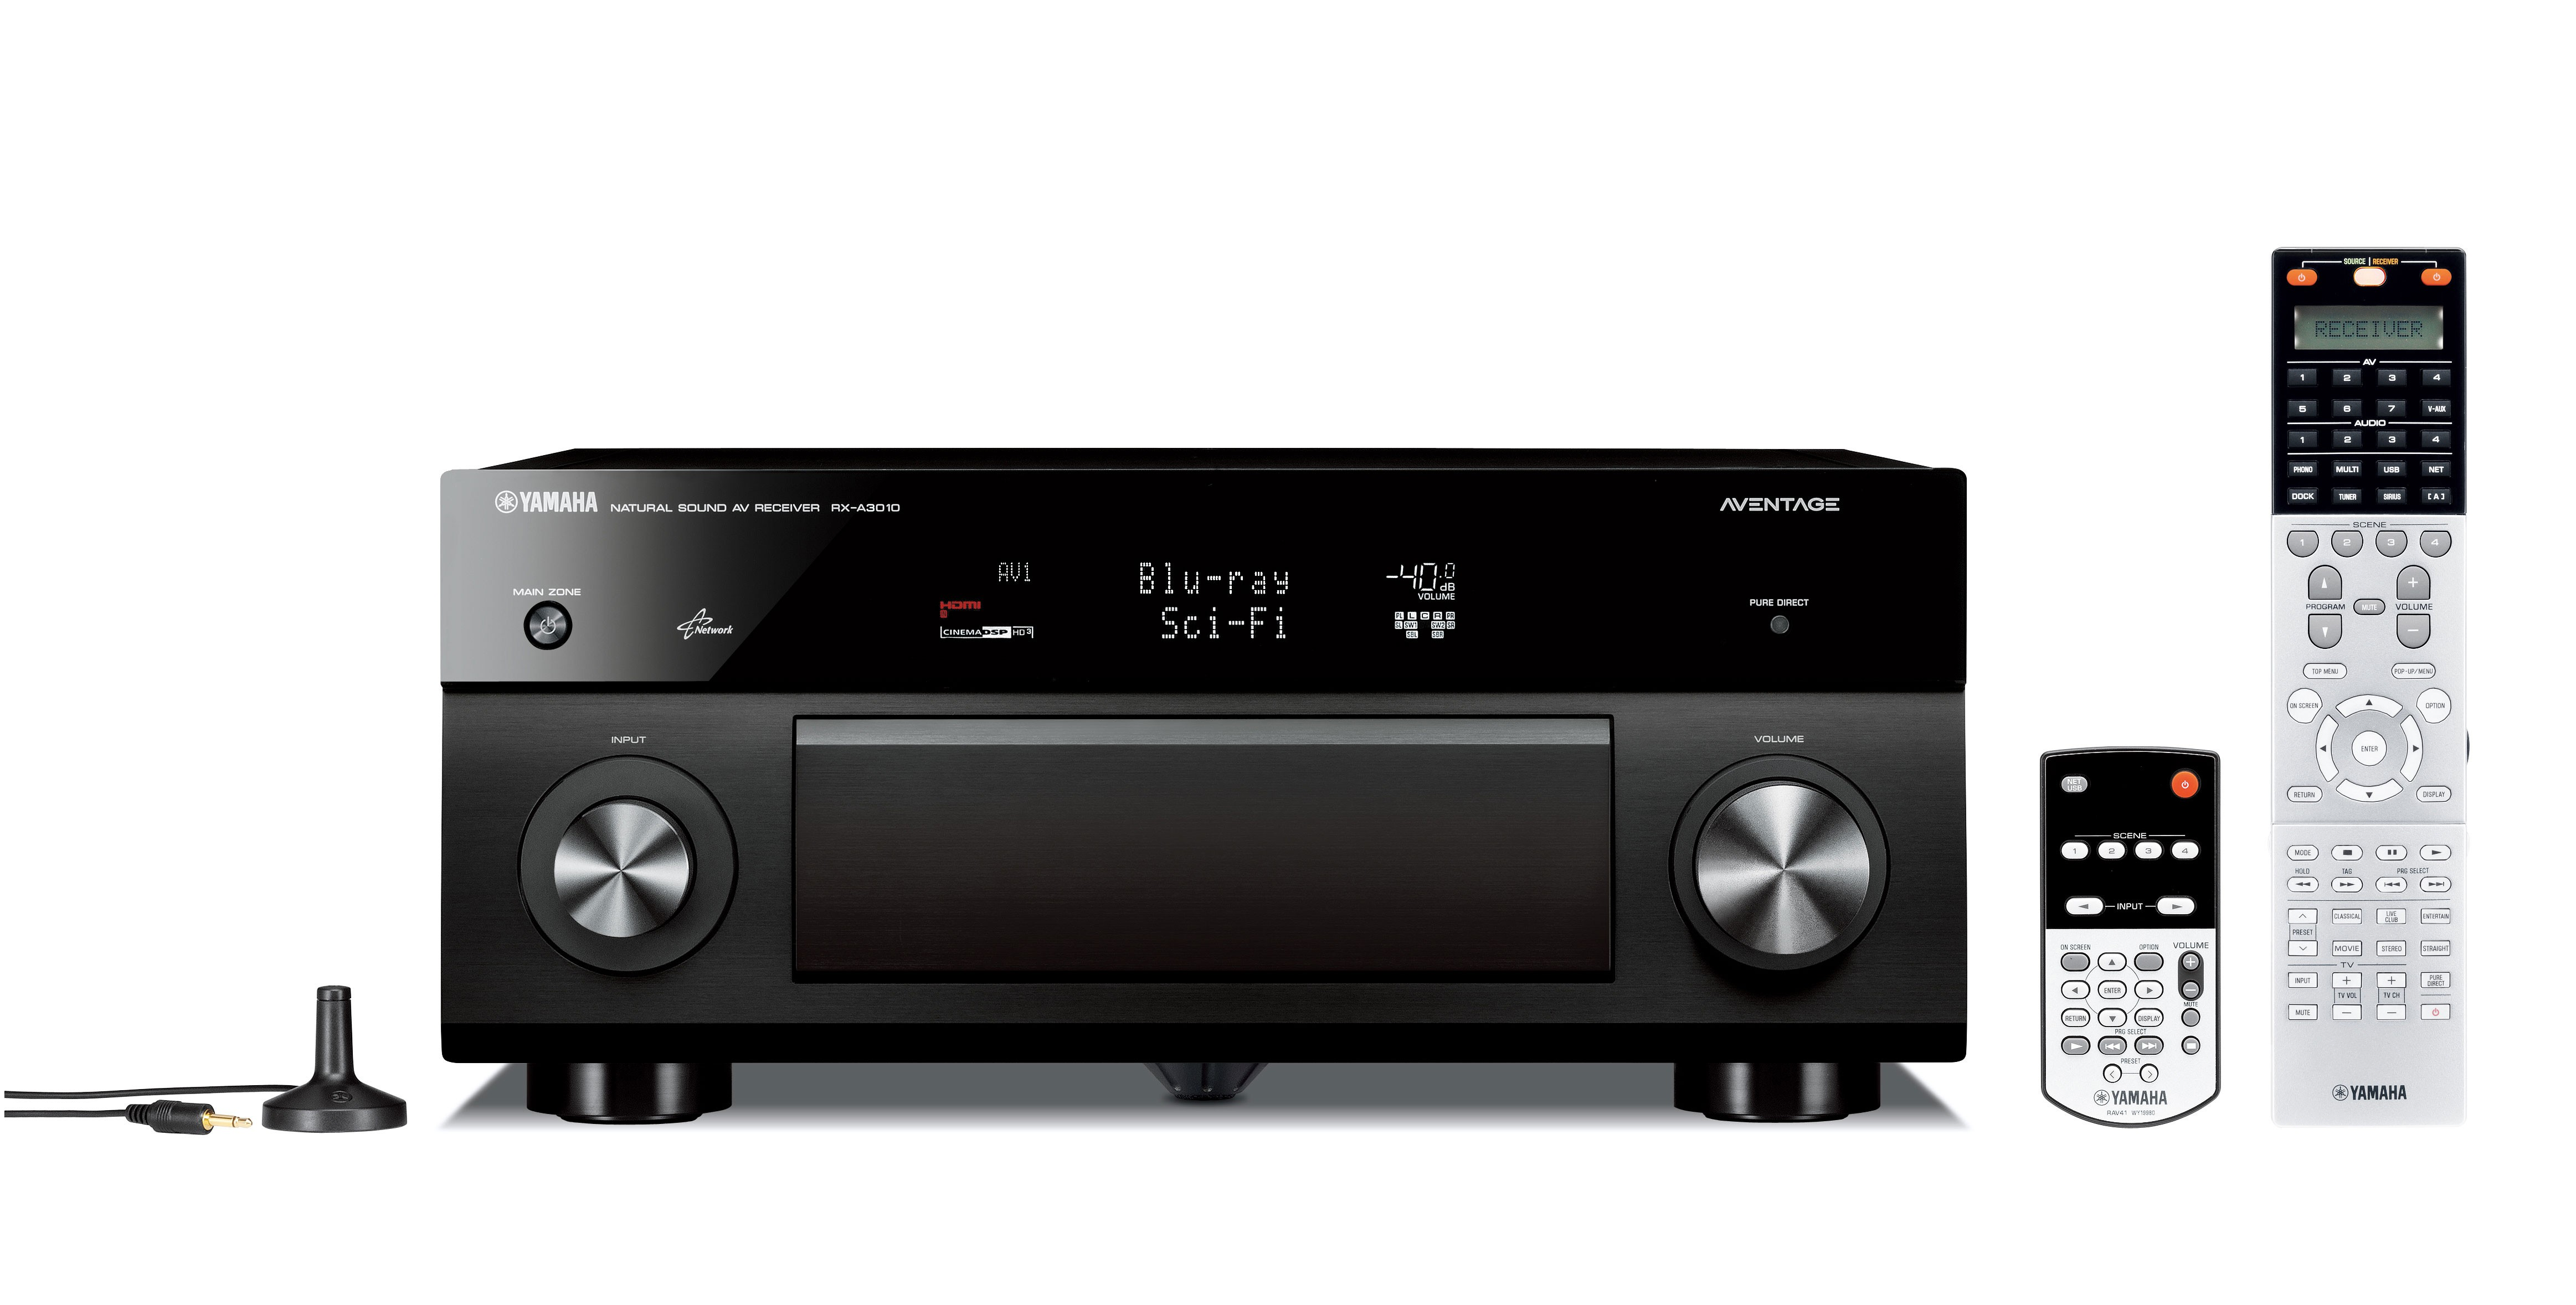 YAMAHA RX-A3010 AVENTAGE Series Home Theater Receiver